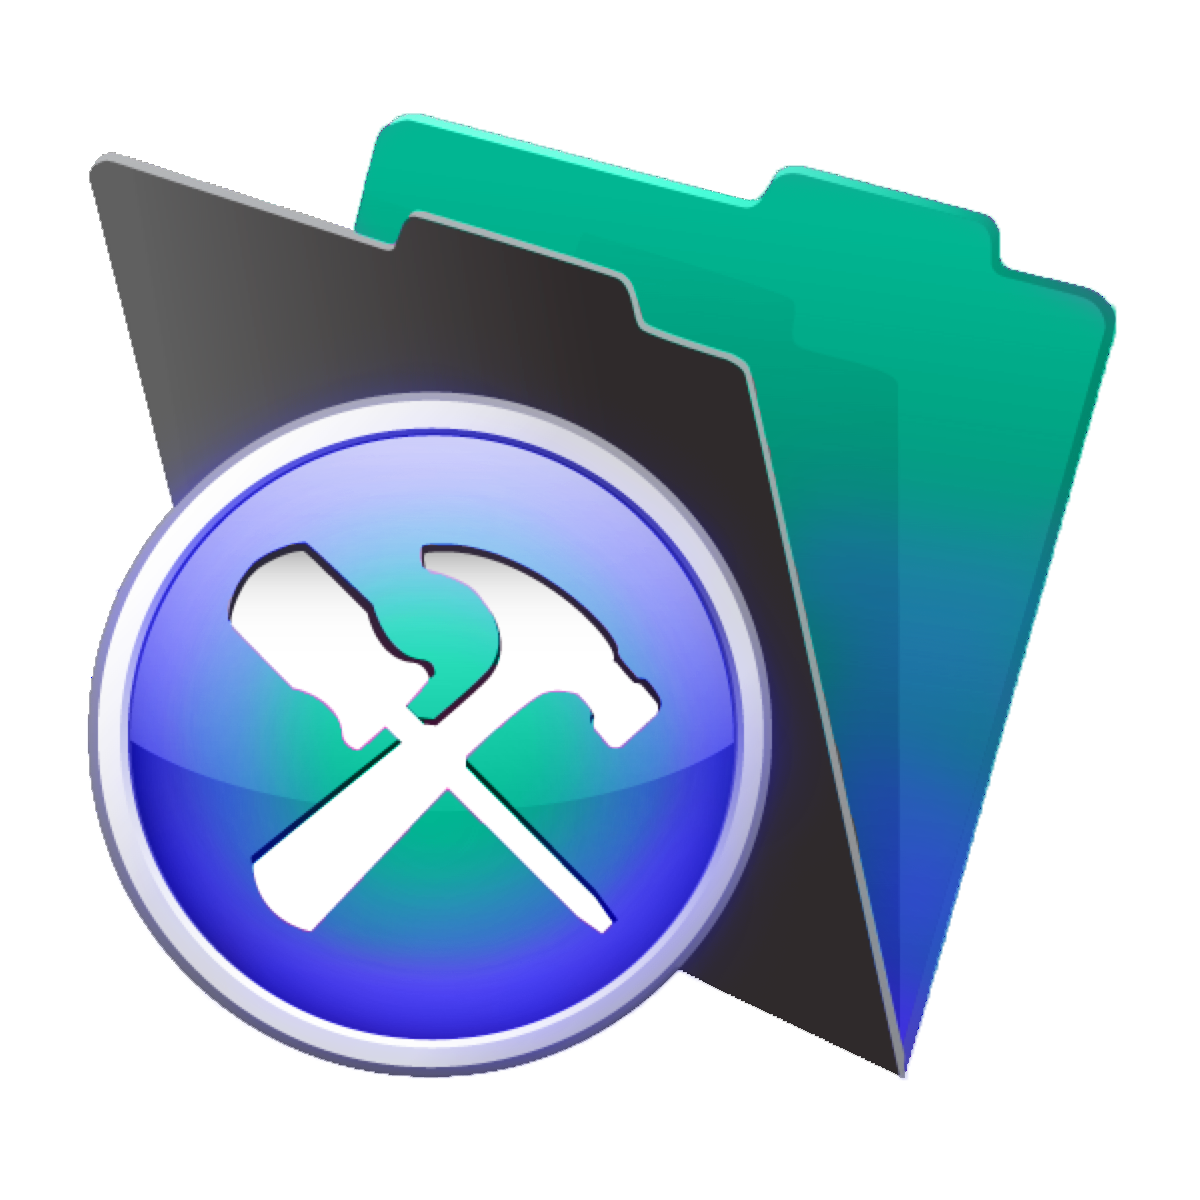 filemaker pro 13 icon replacement homebase software